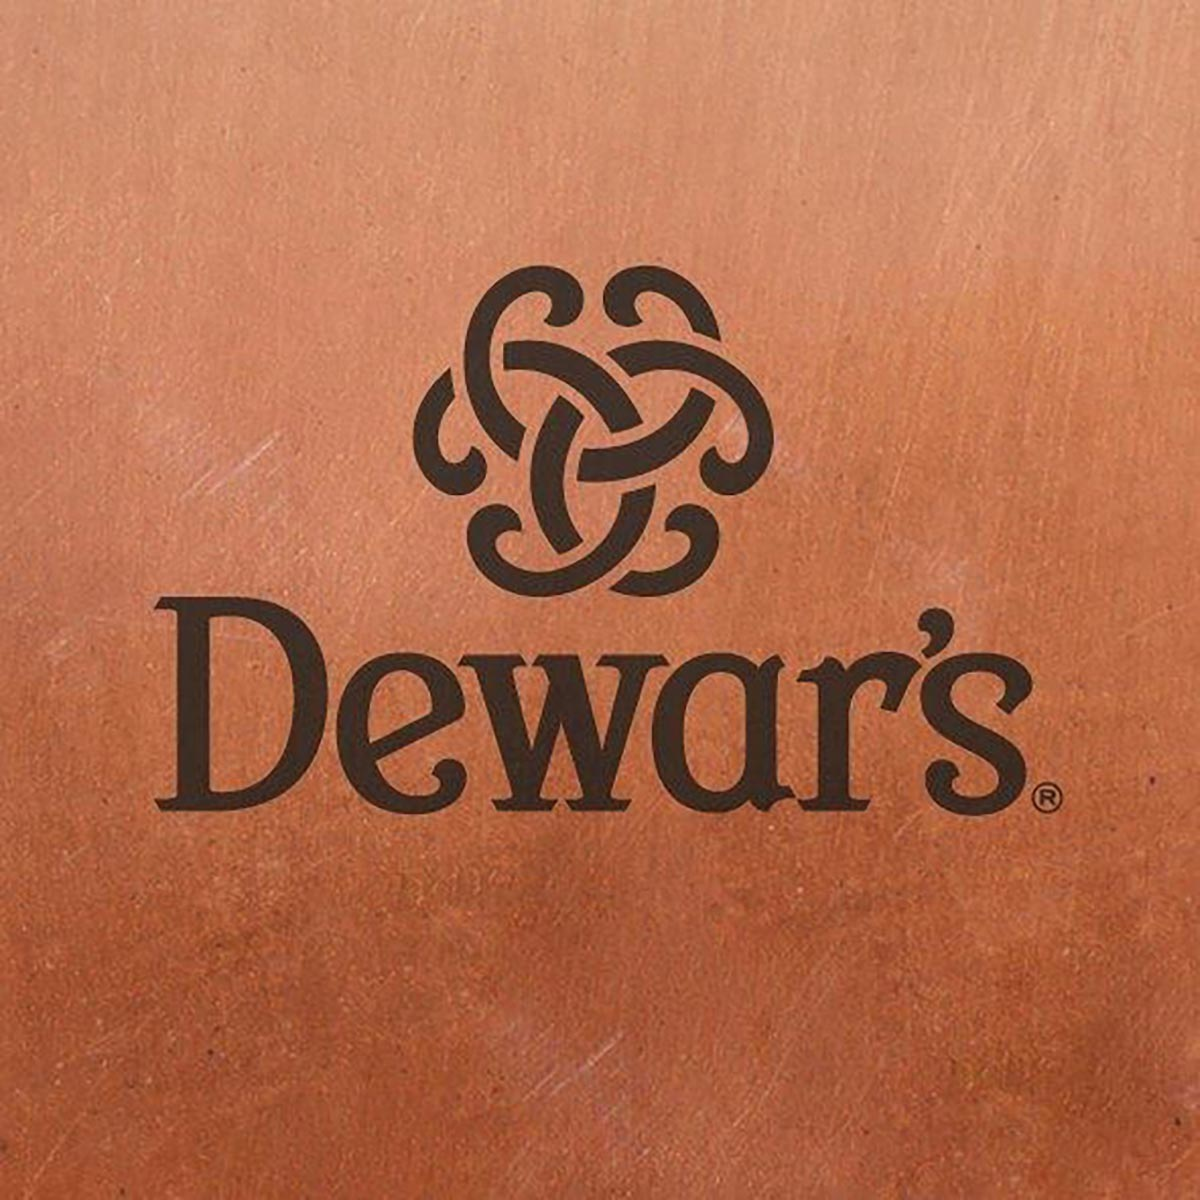 Howells Joins Dewar's as North American Brand Ambassador